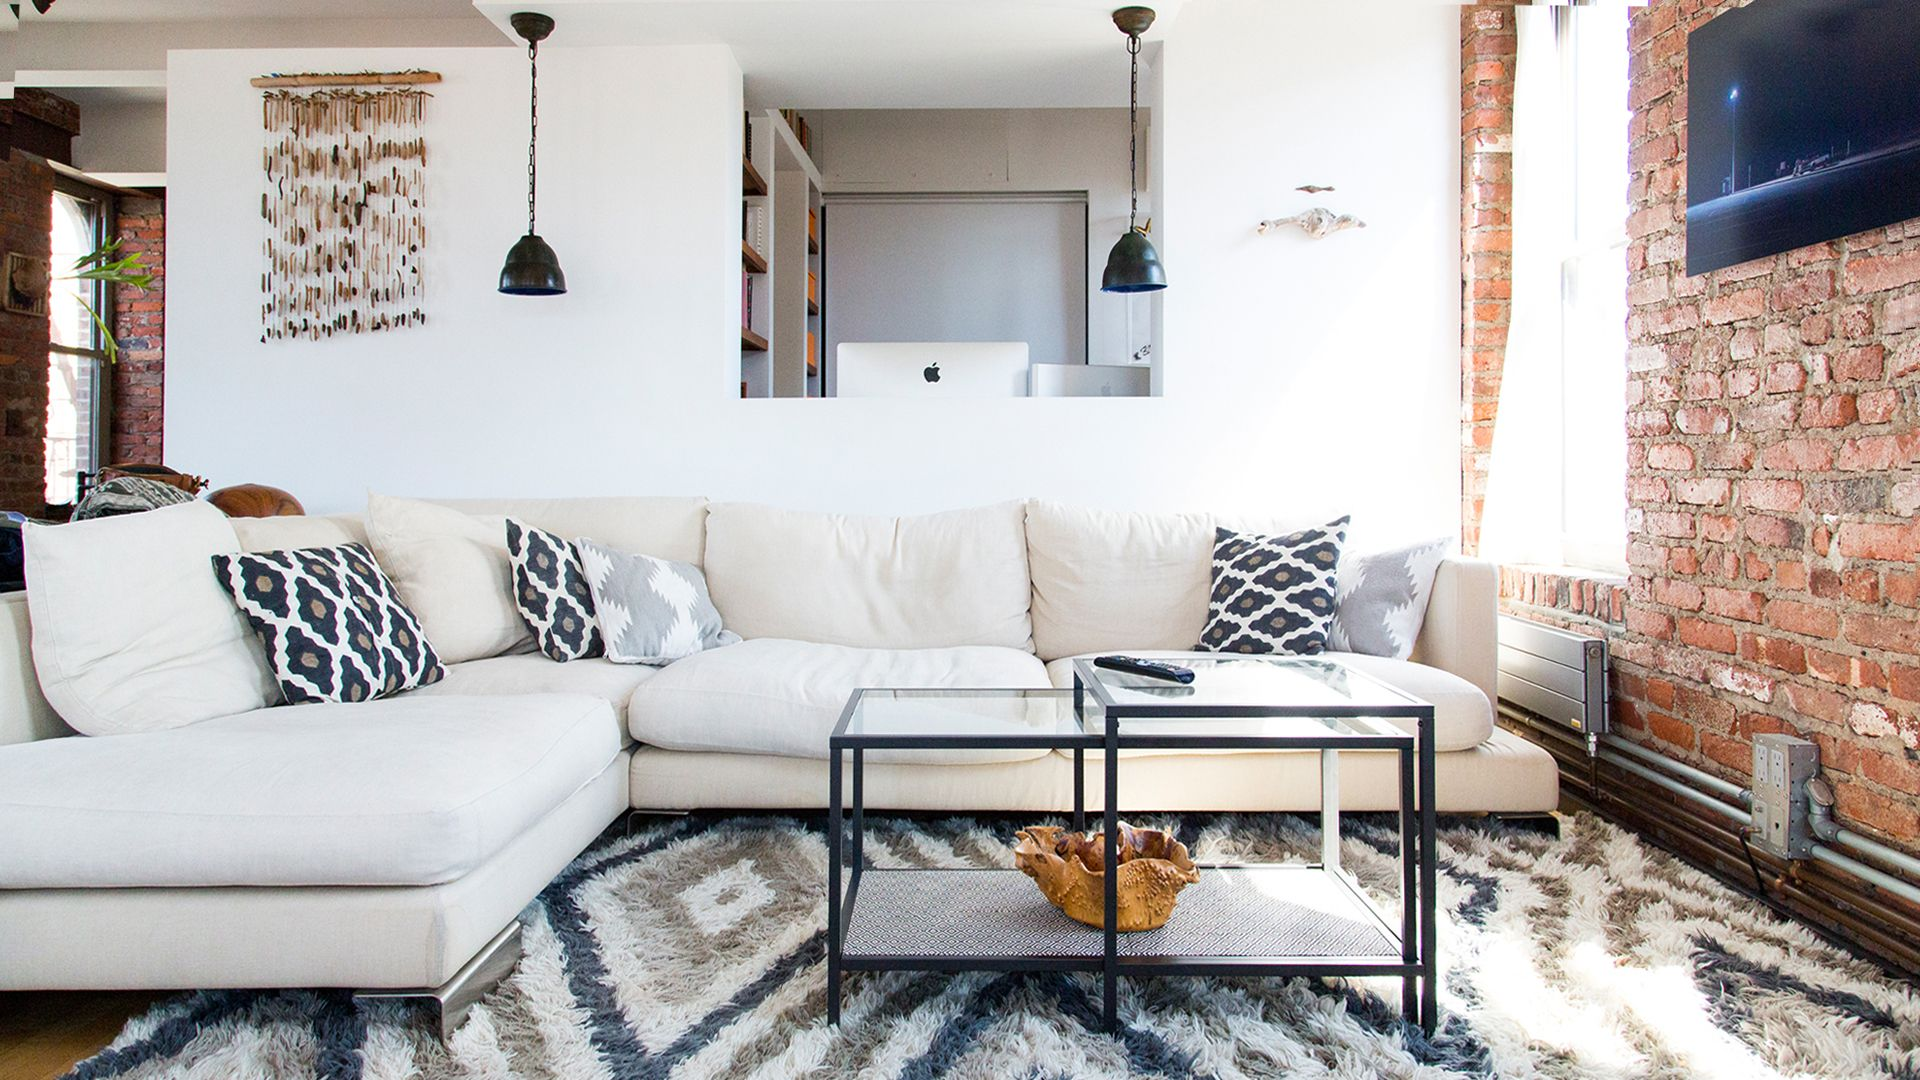 20 Minute Diy Add Style To Your Coffee Table With This Ikea Hack Ikea Hack Living Room Coffee Table Farmhouse Coffee Table Ikea Hack [ 1080 x 1920 Pixel ]